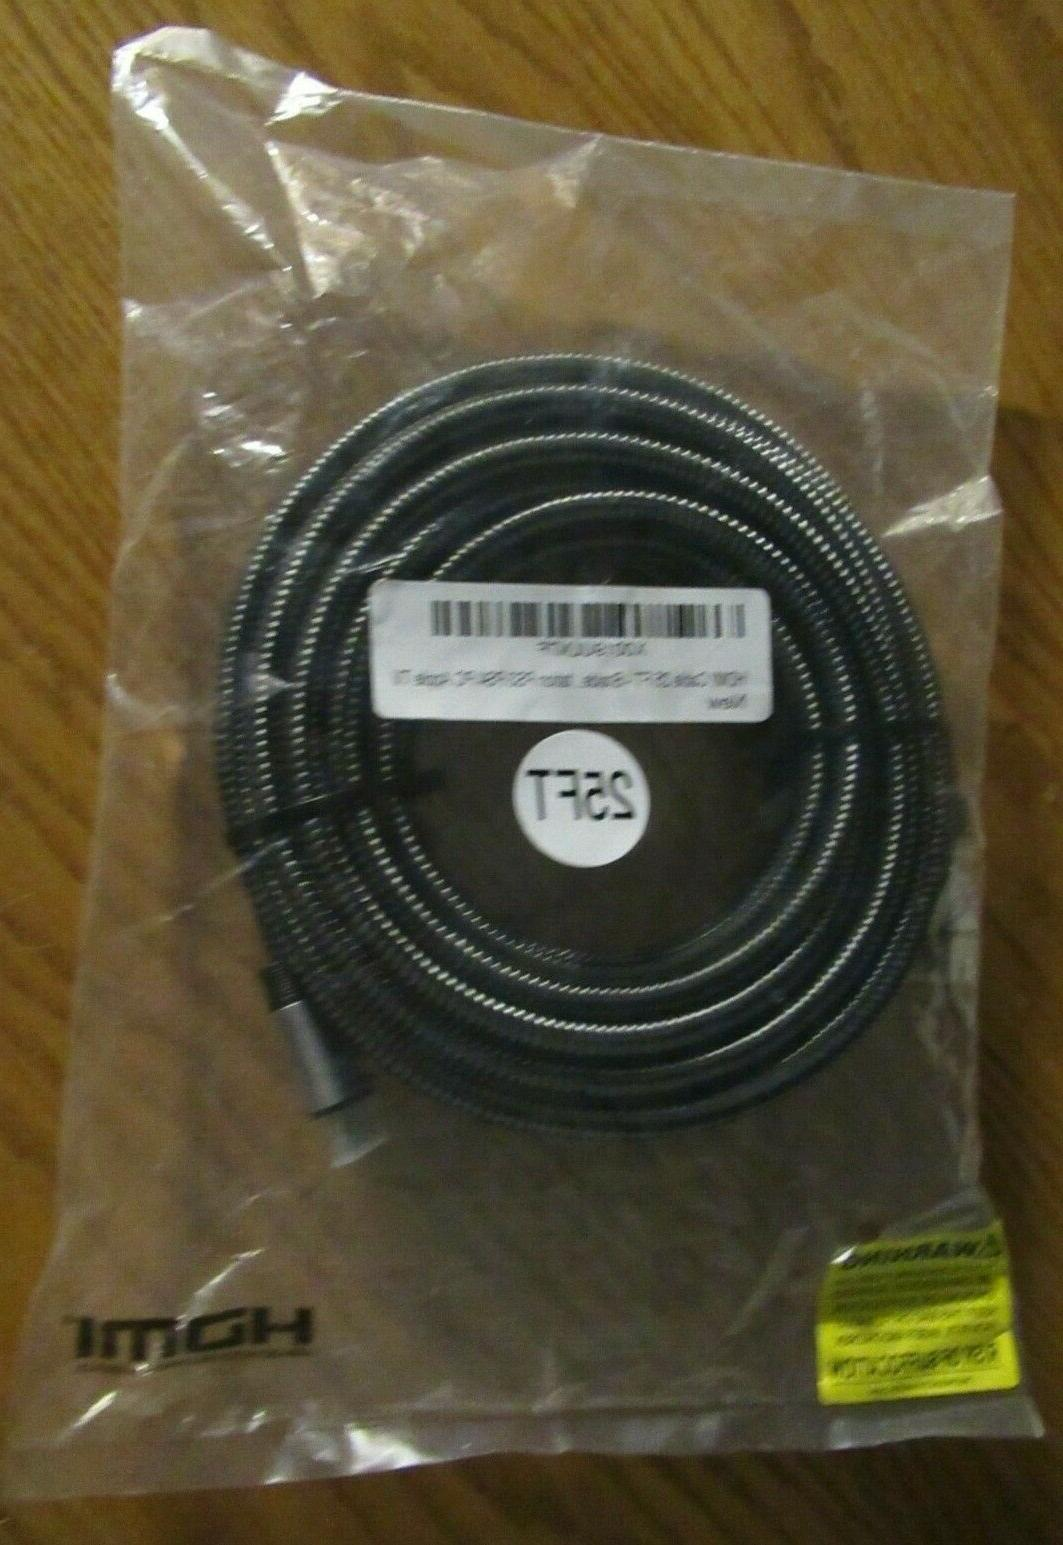 hdmi cable 4k with braided cord 25